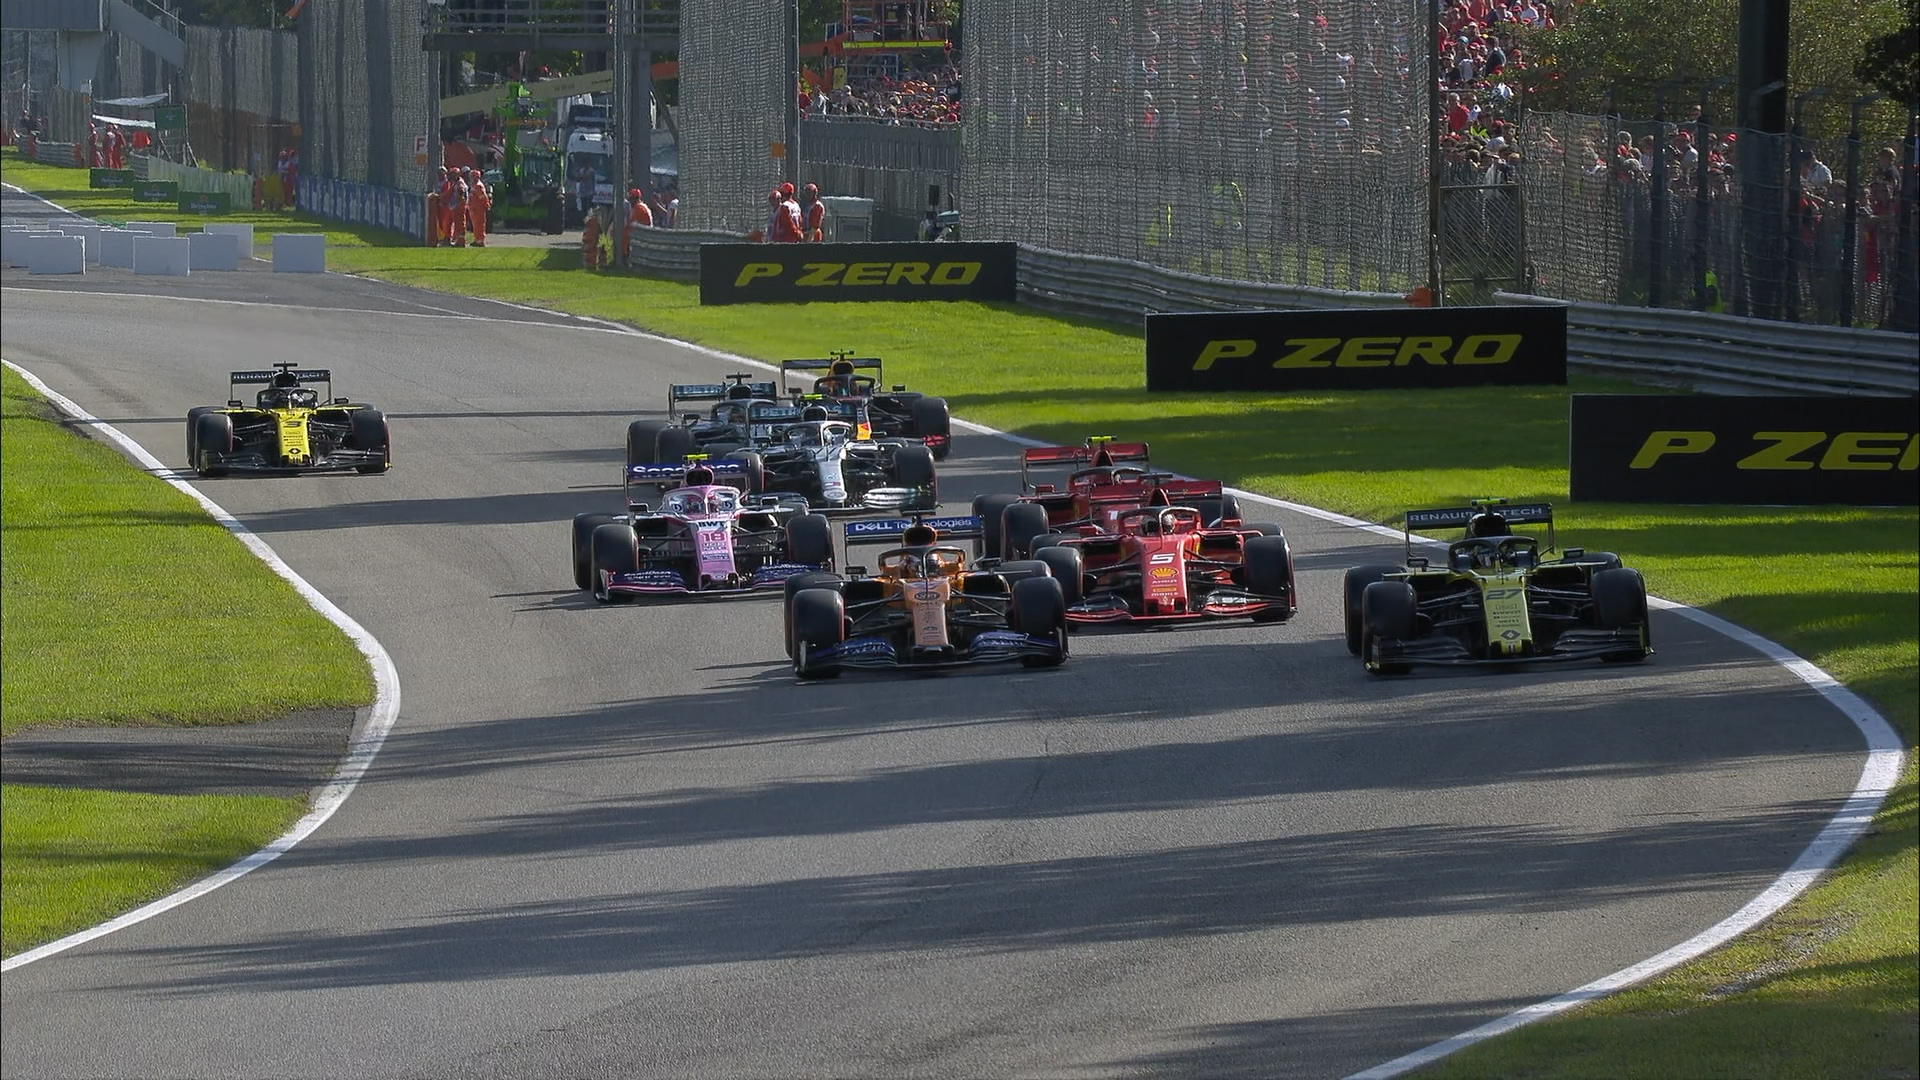 It S Going To Be A Nightmare Hamilton Braced For More Qualifying Shenanigans At Monza This Year Formula 1